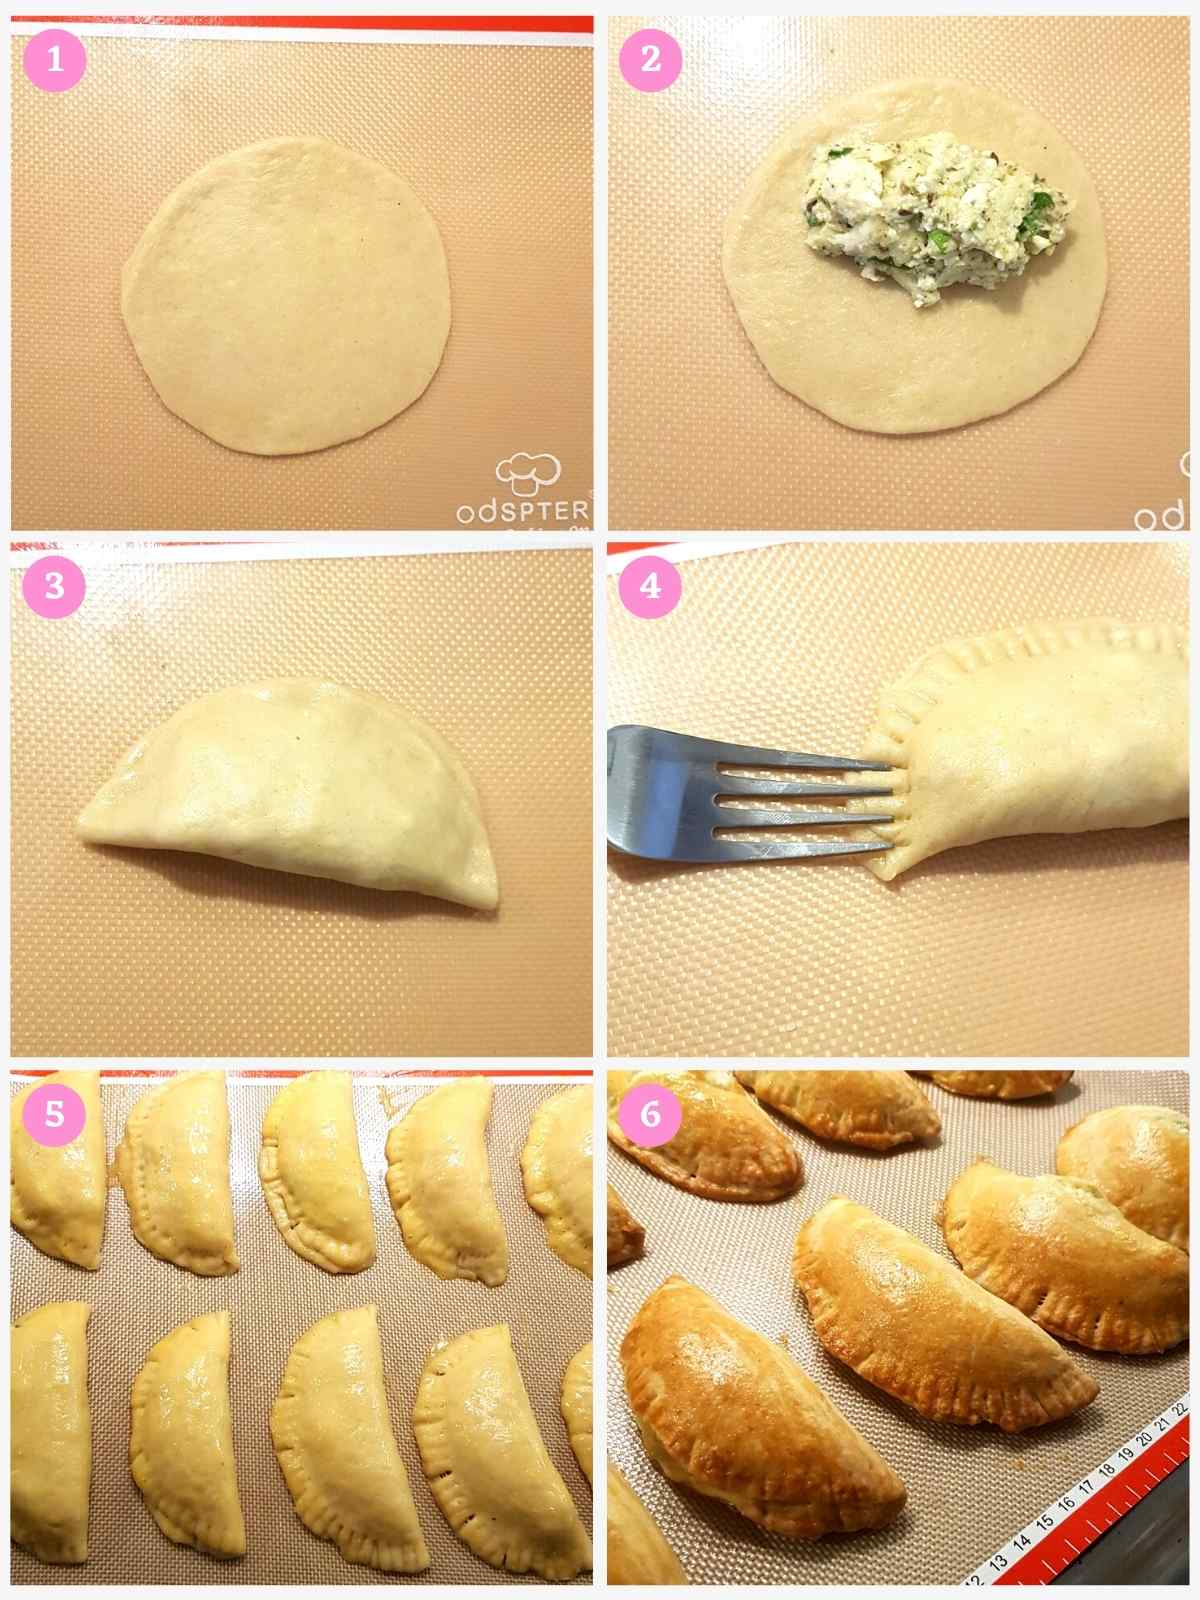 Collage of 4 images showing steps to making Middle Eastern Cheese Pastries